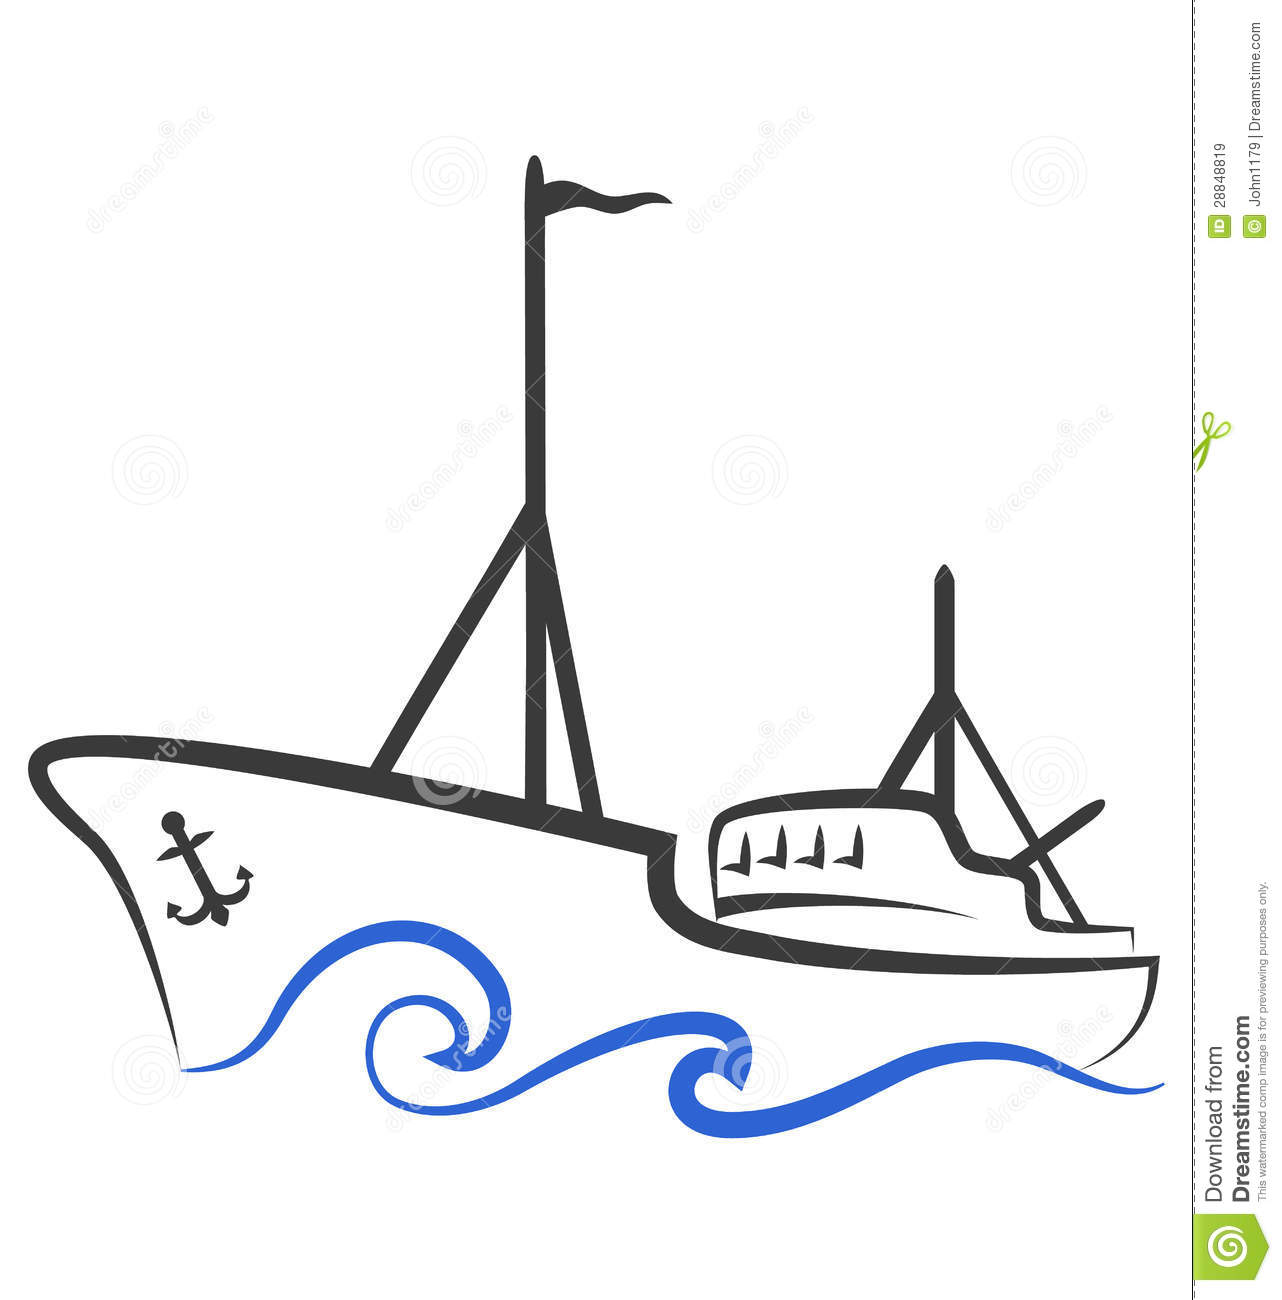 Fishing Boat Silhouette Royalty Free Stock Images - Image: 28848819